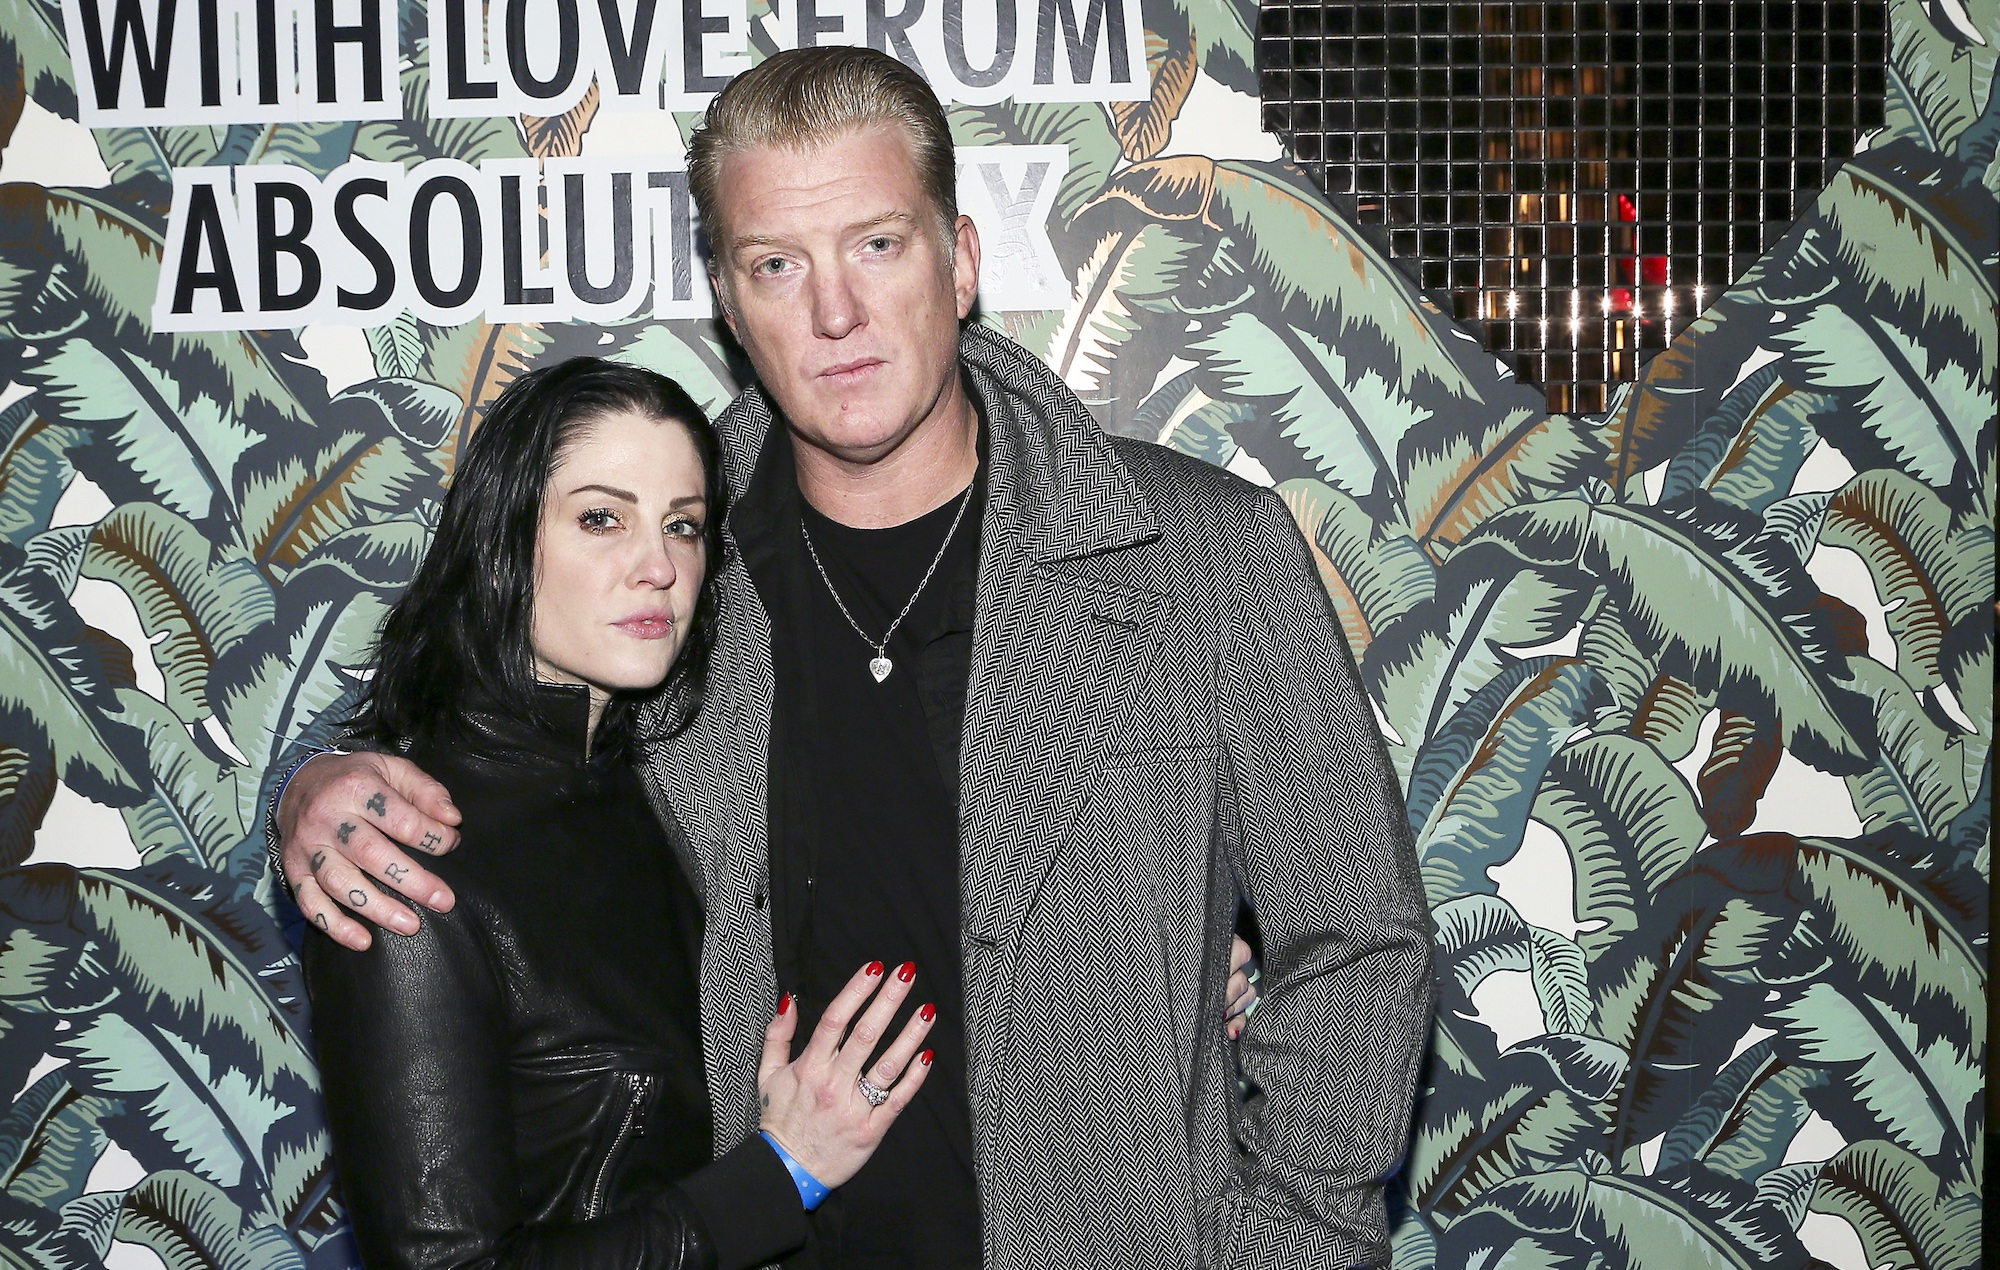 Judge orders Brody Dalle to let Josh Homme see their sons as custody battle continues